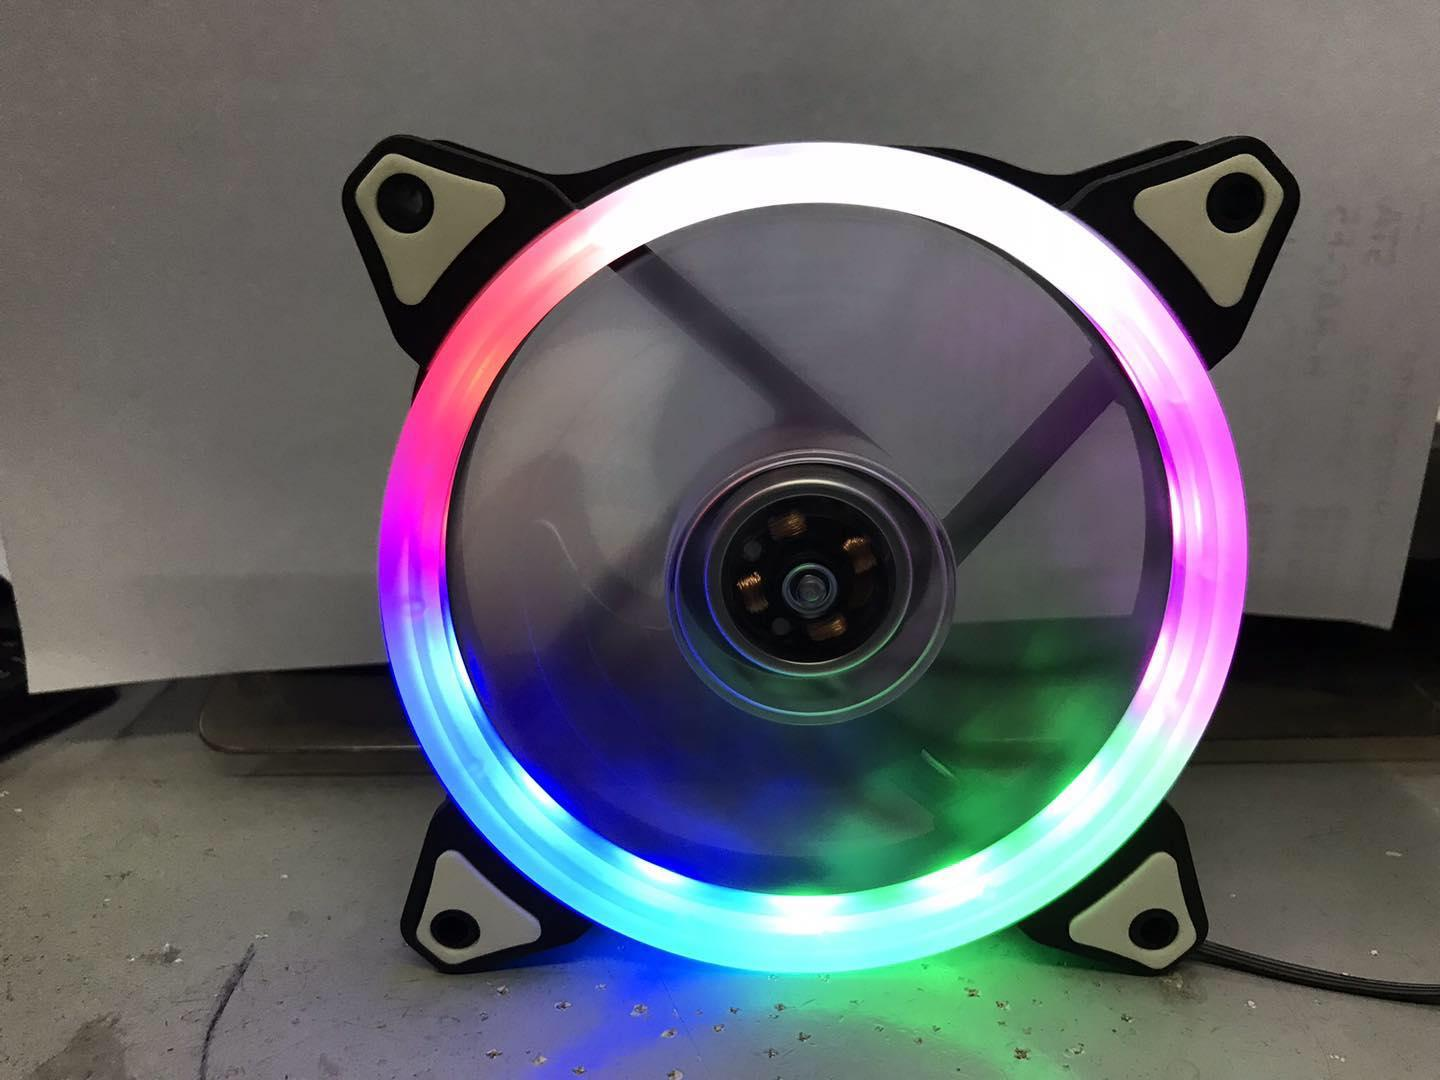 Kingbao 5 Color Led Ring 120mm Pc Case Fan By Kingbao.